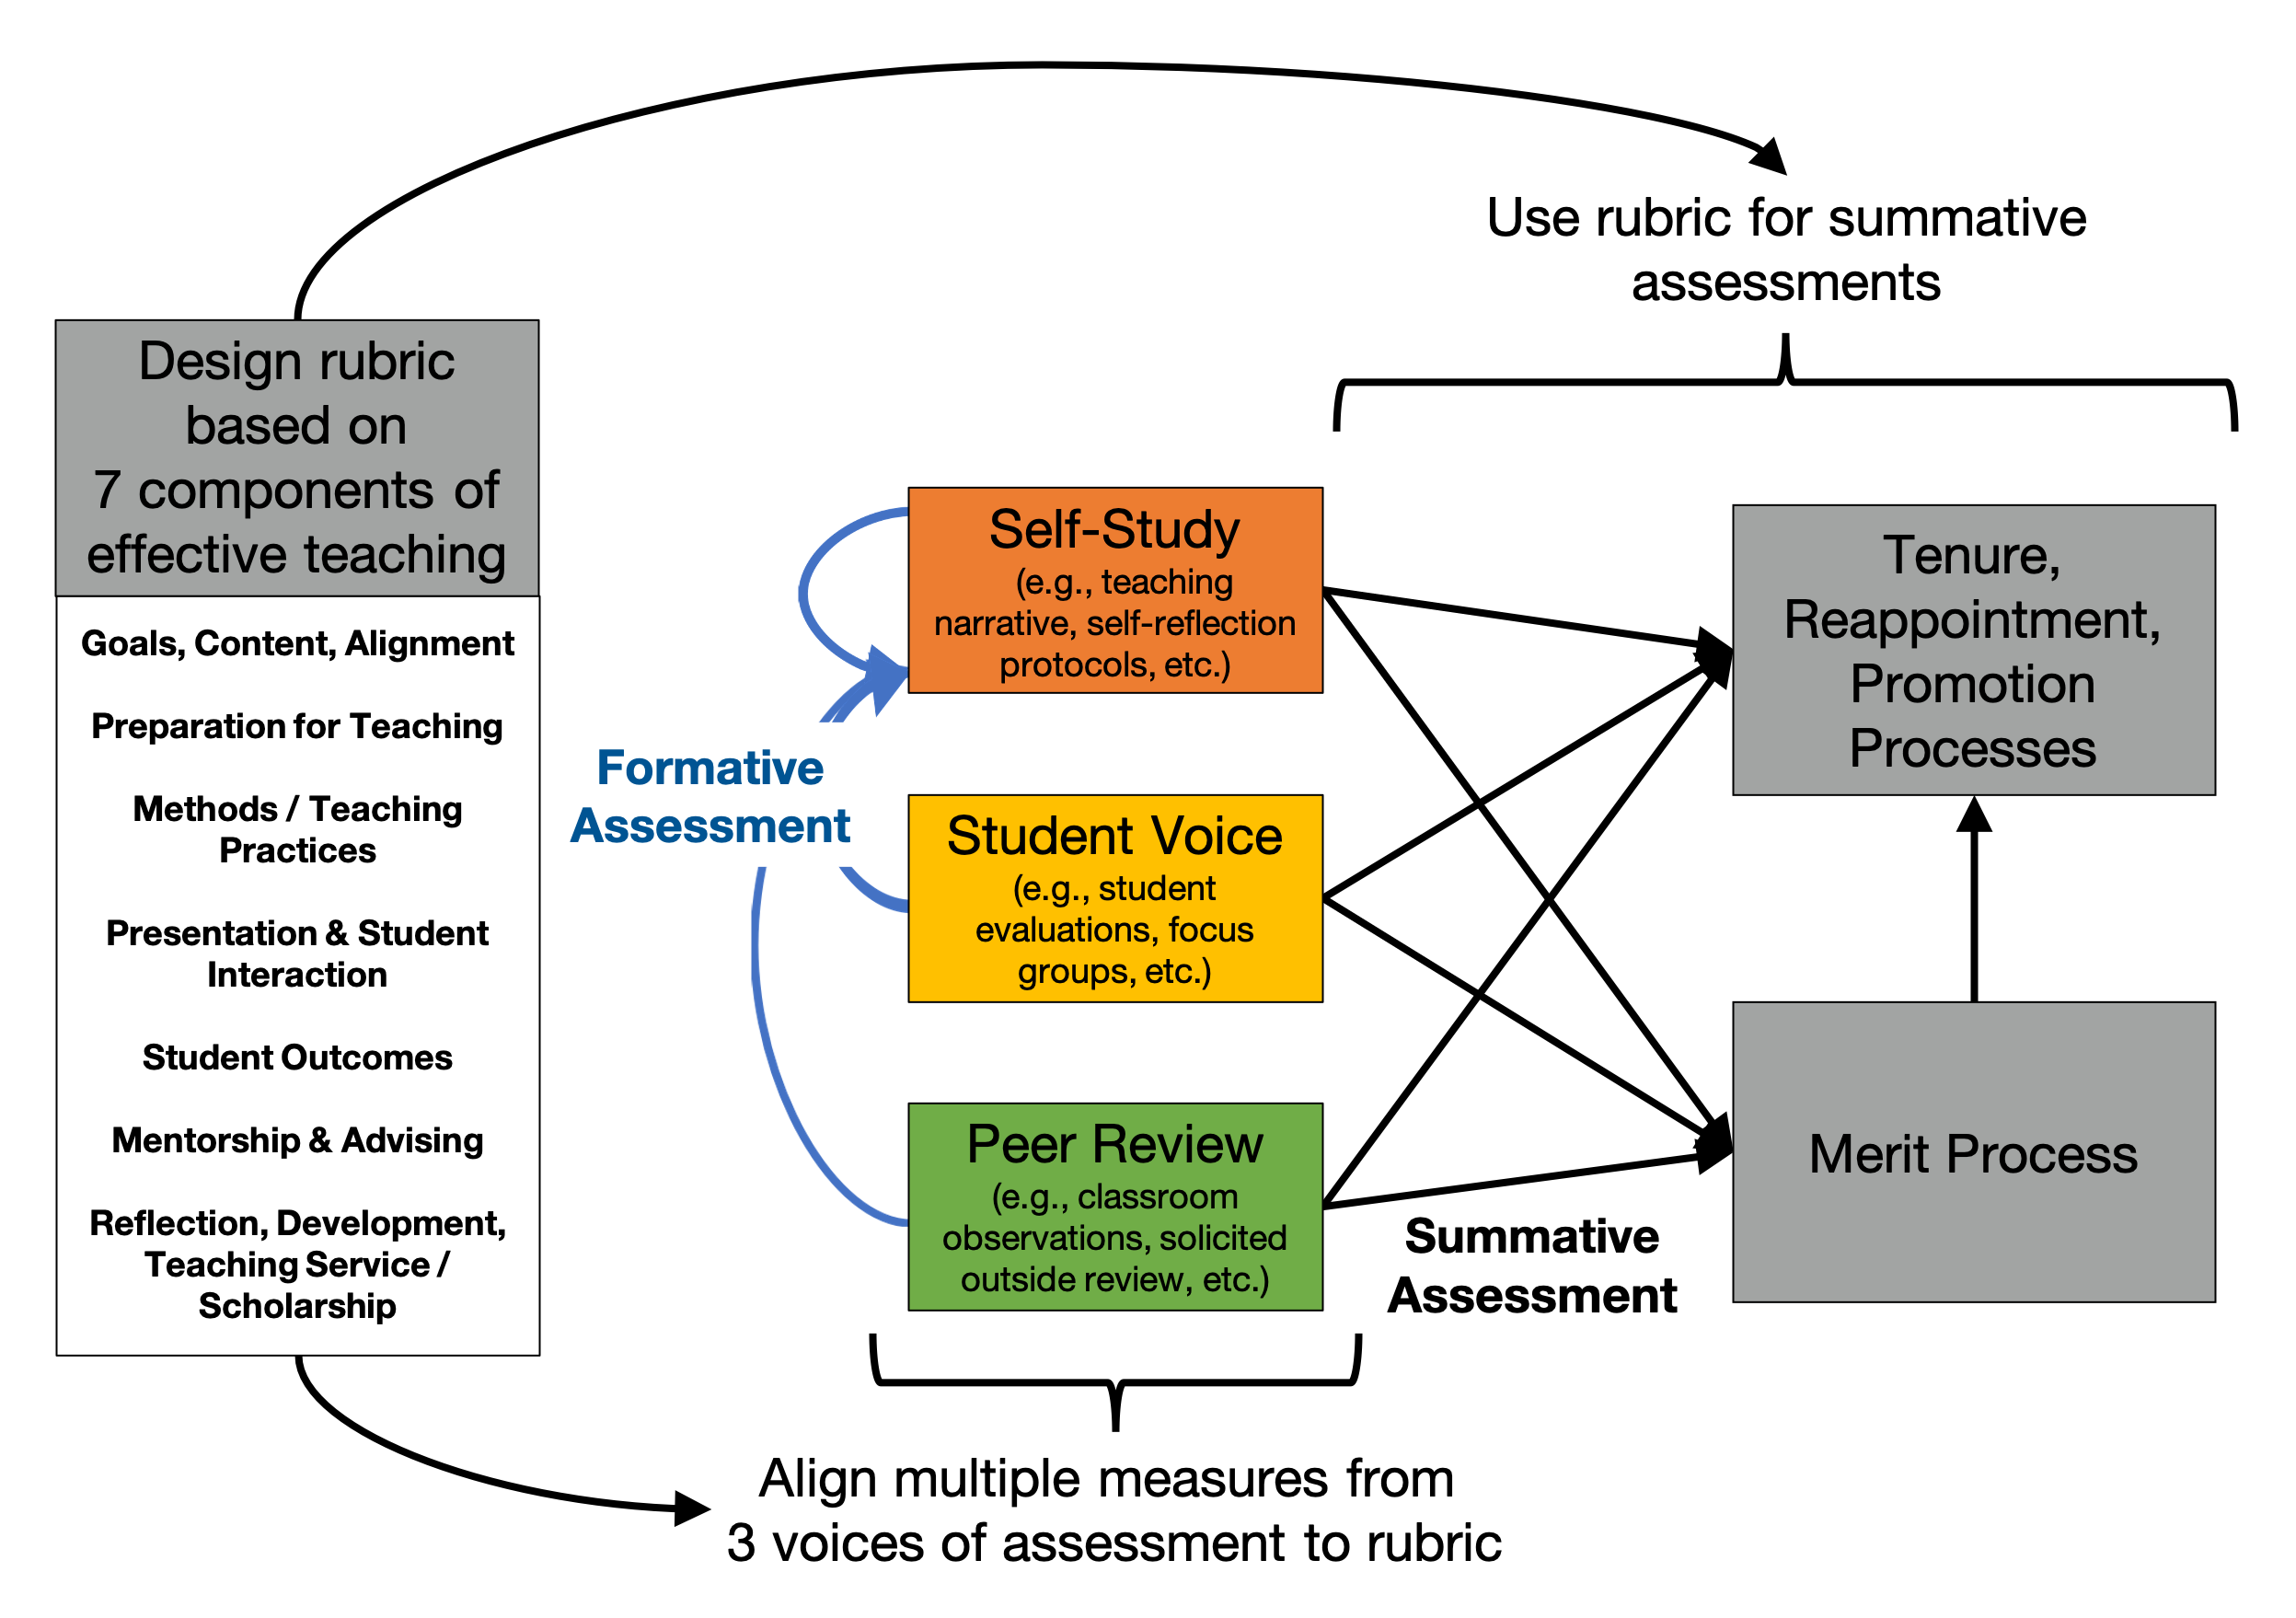 Figure 1. The Teaching Quality Framework (TQF) Initiative Framework Model for Improved Evaluation. Multiple measures from multiple voices are used to collect data that align with a rubric that is grounded in scholarship. These measures are used for formative/developmental purposes and as a scoring metric for summative assessment processes.